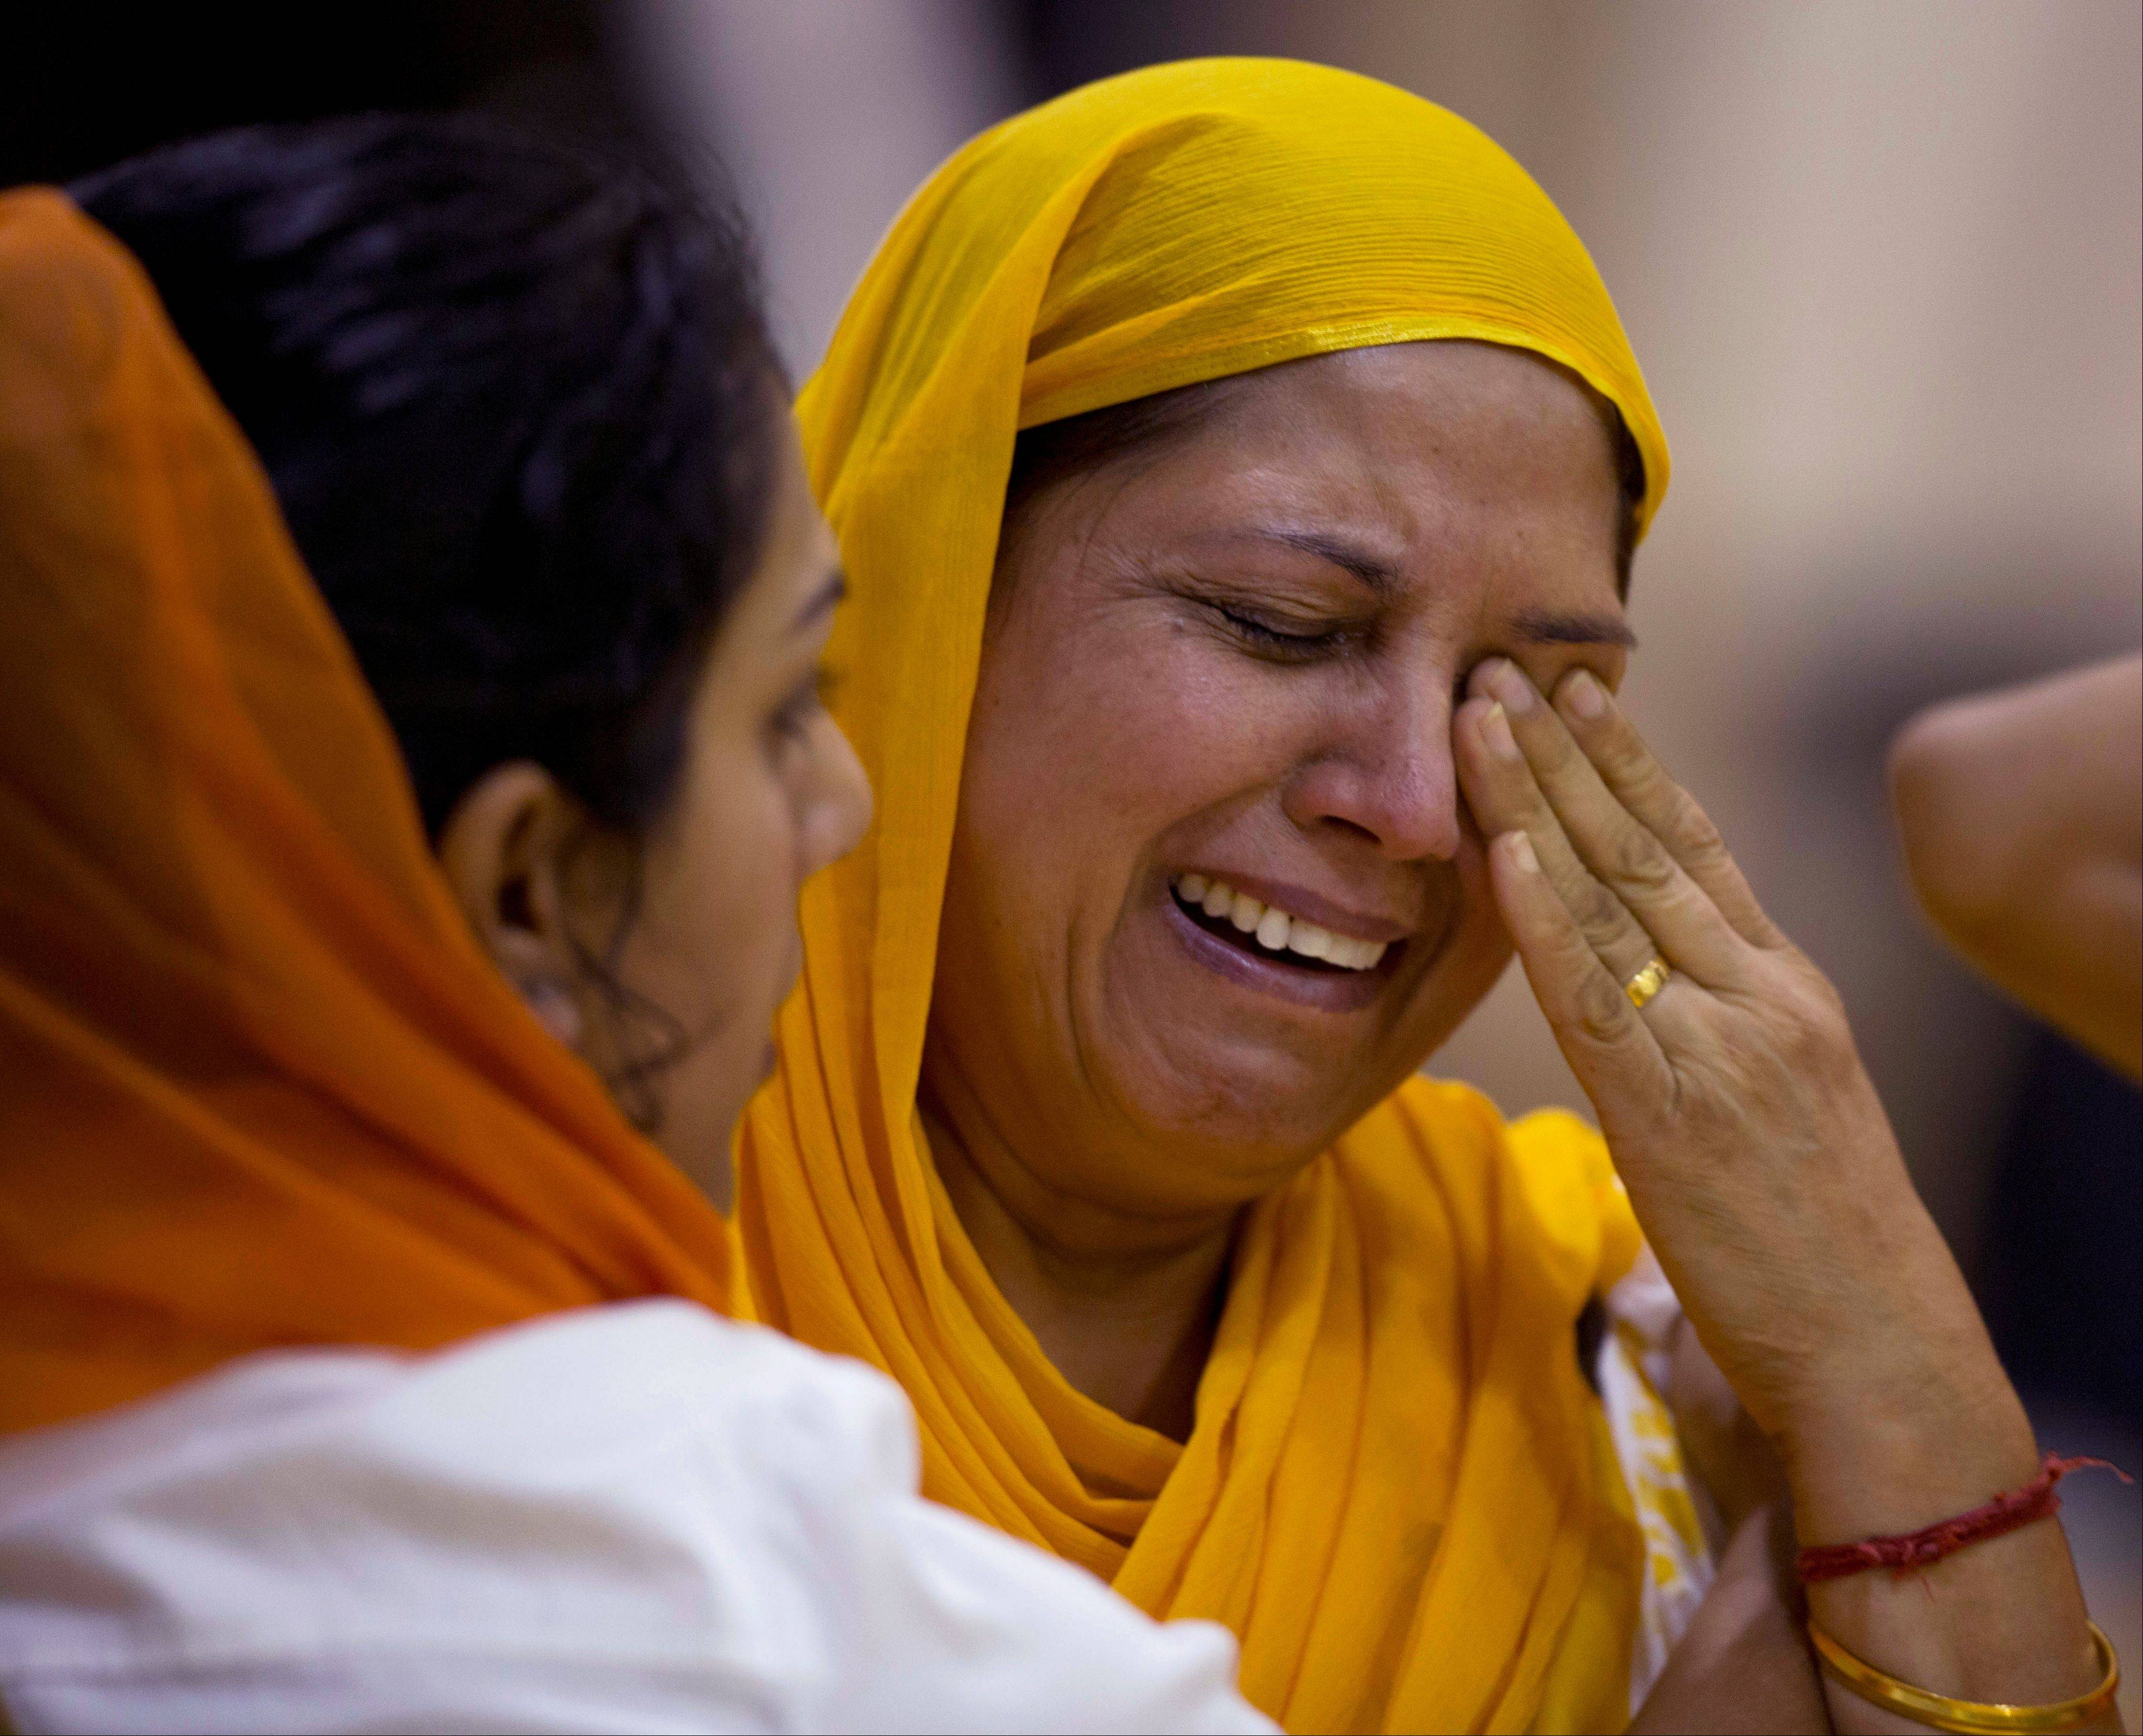 Mourners weep Friday at the funeral and memorial service for the six victims of the Sikh temple of Wisconsin mass shooting in Oak Creek, Wis.